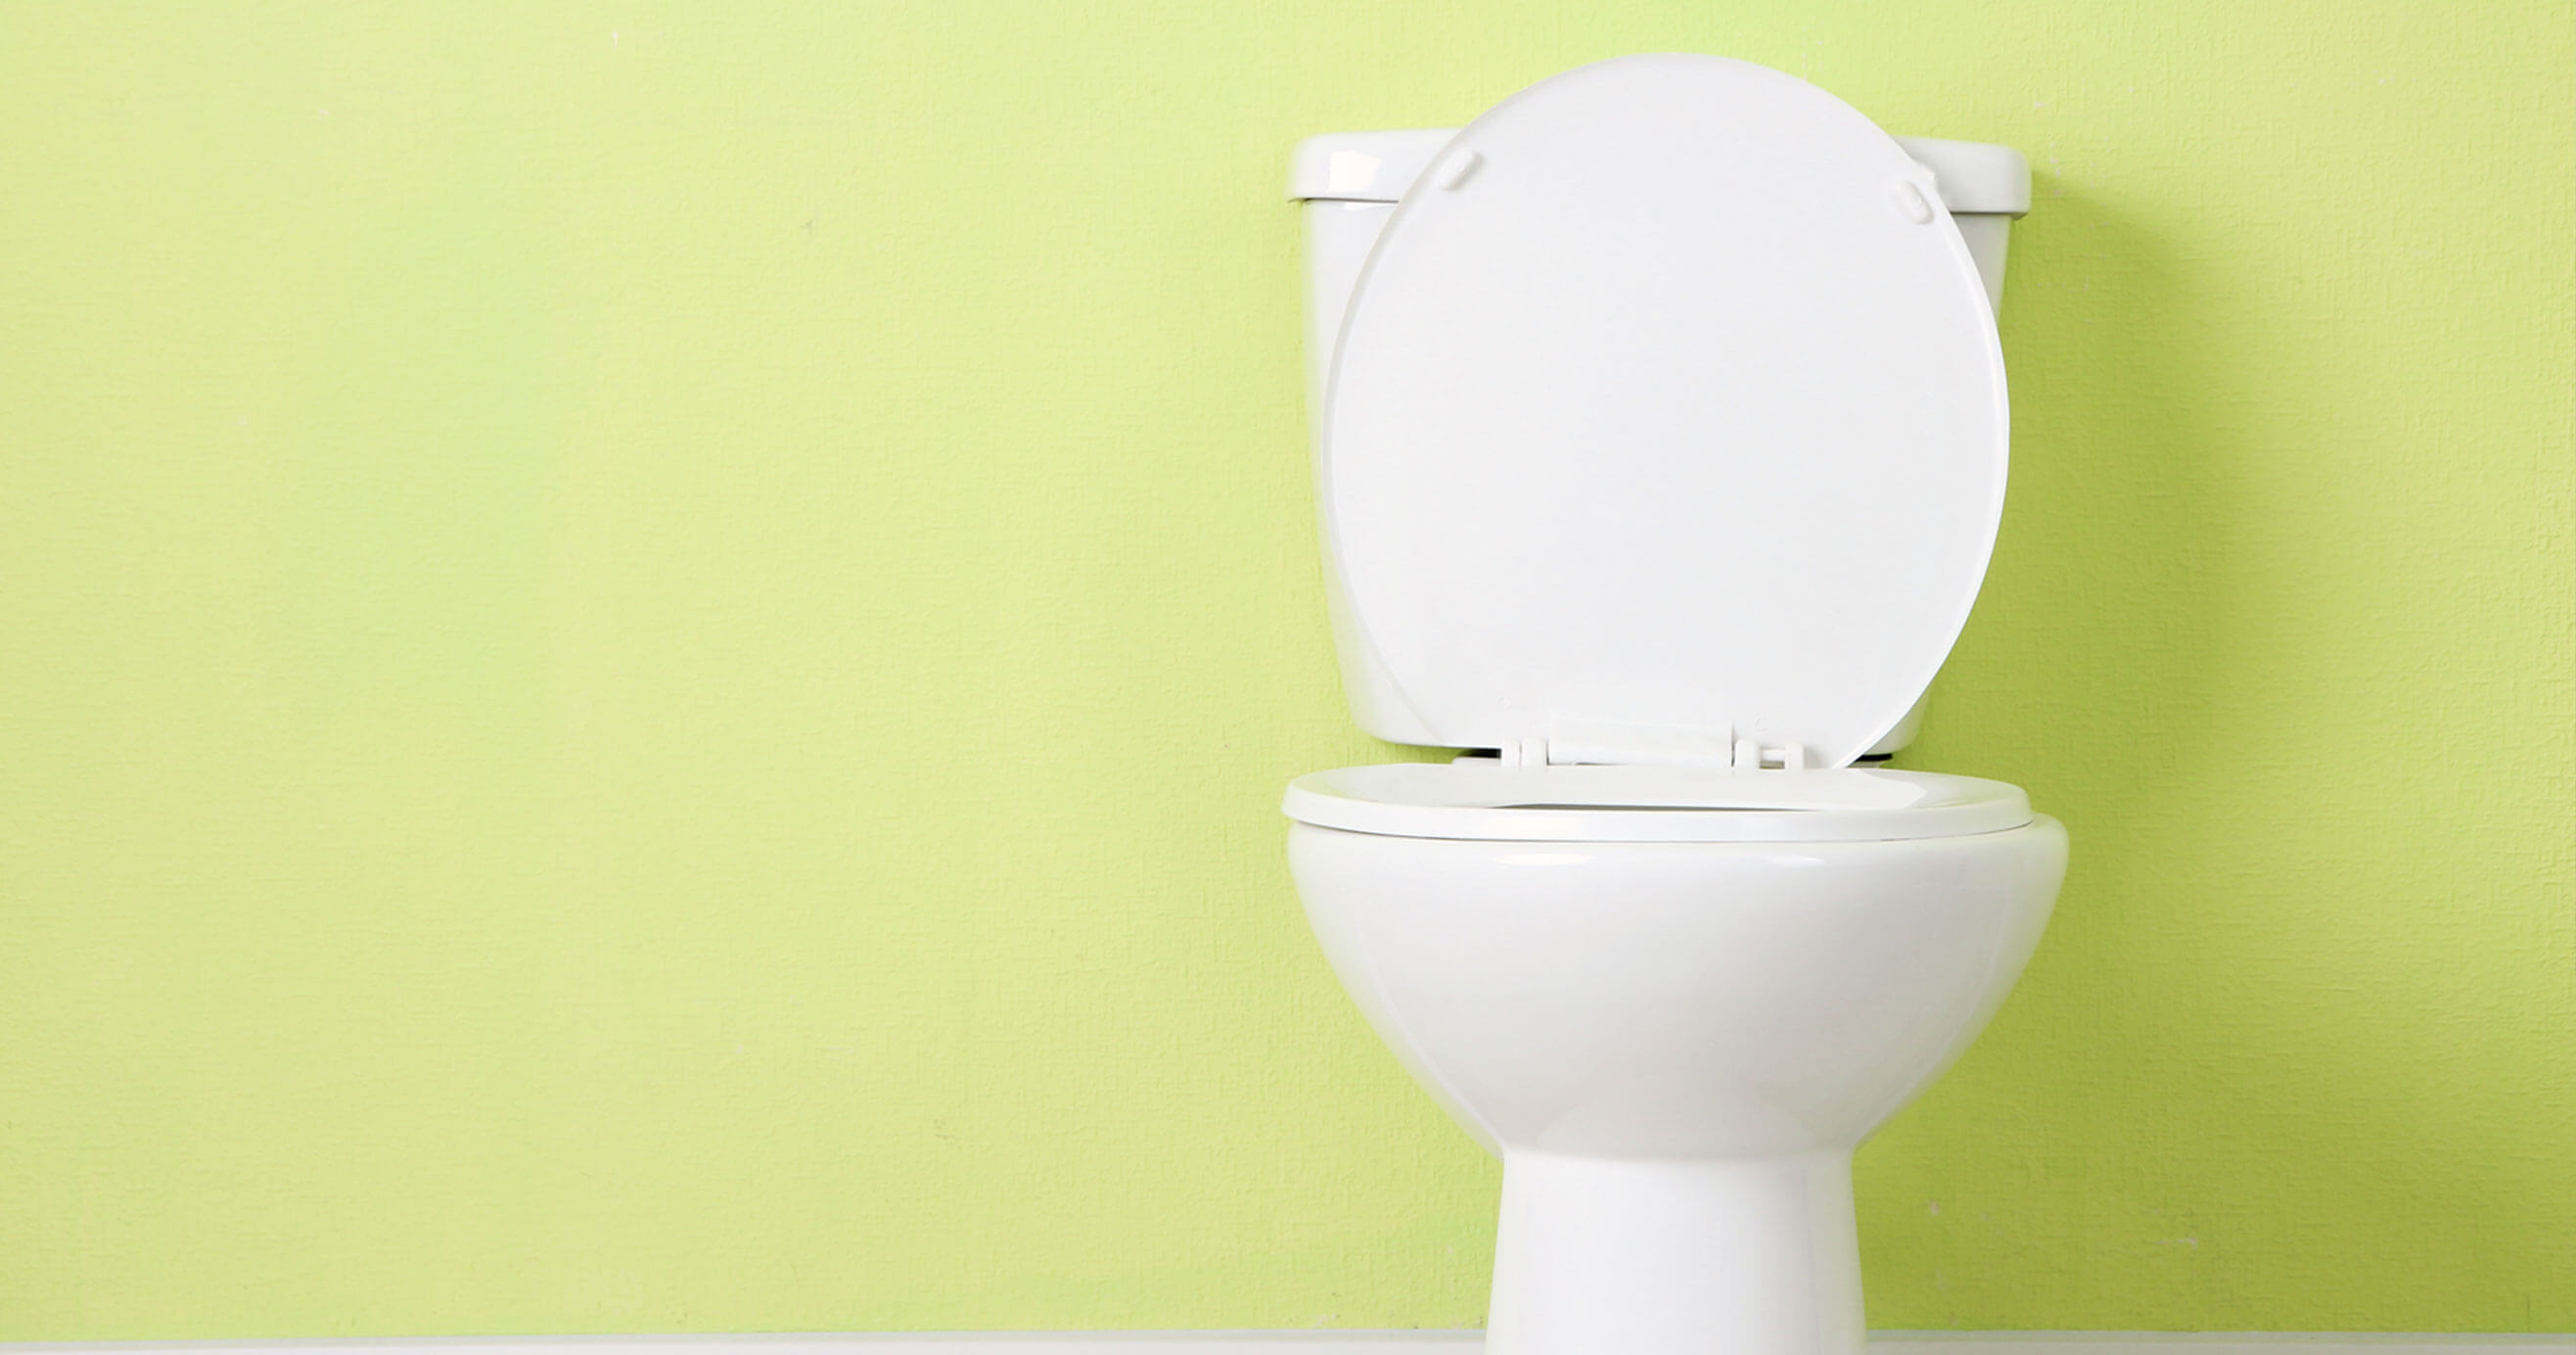 Toilet with green background